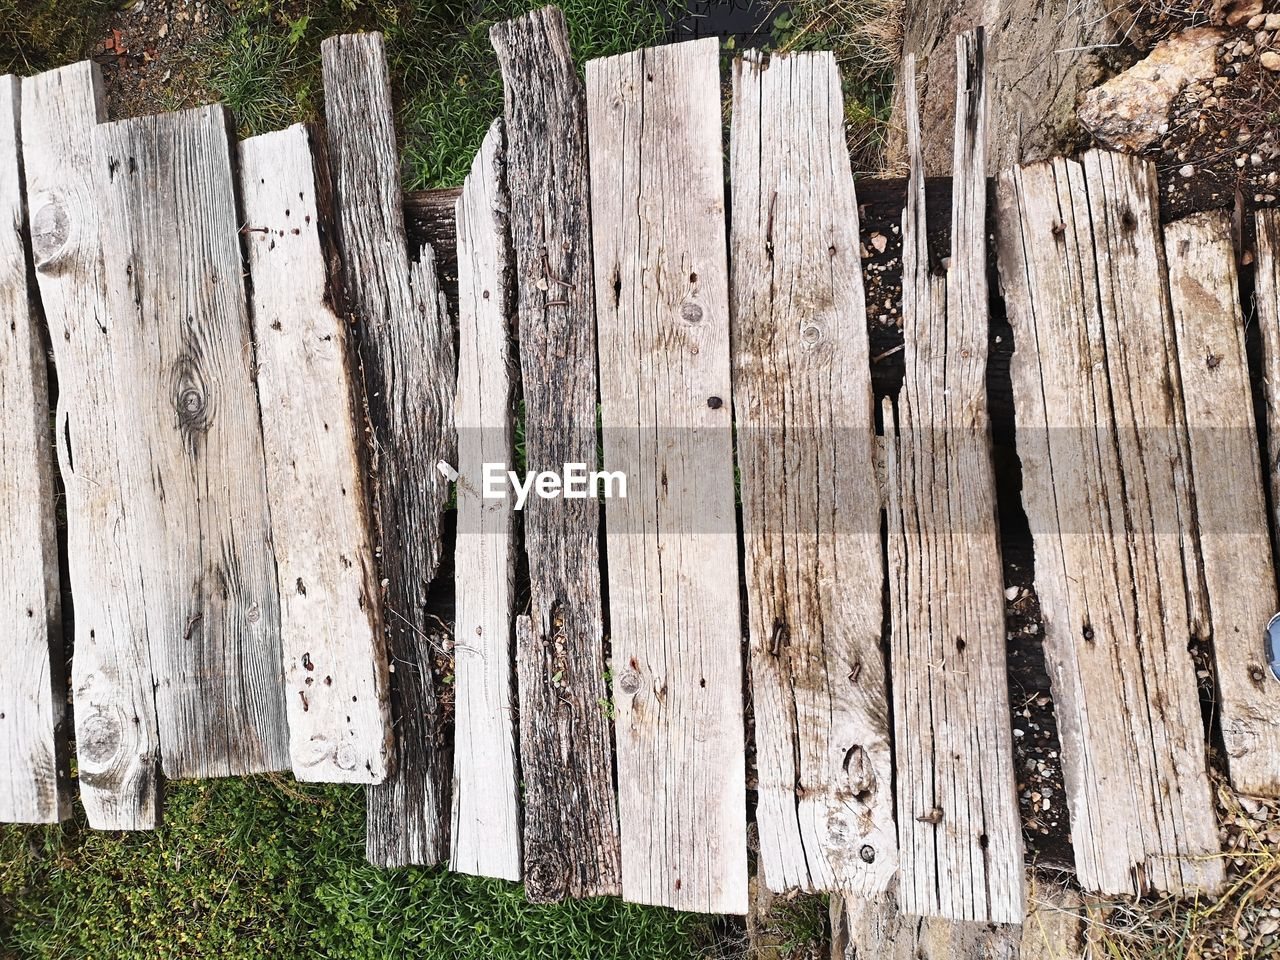 wood - material, wood, tree, no people, textured, barrier, nature, plank, day, boundary, plant, fence, safety, pattern, close-up, weathered, timber, outdoors, damaged, old